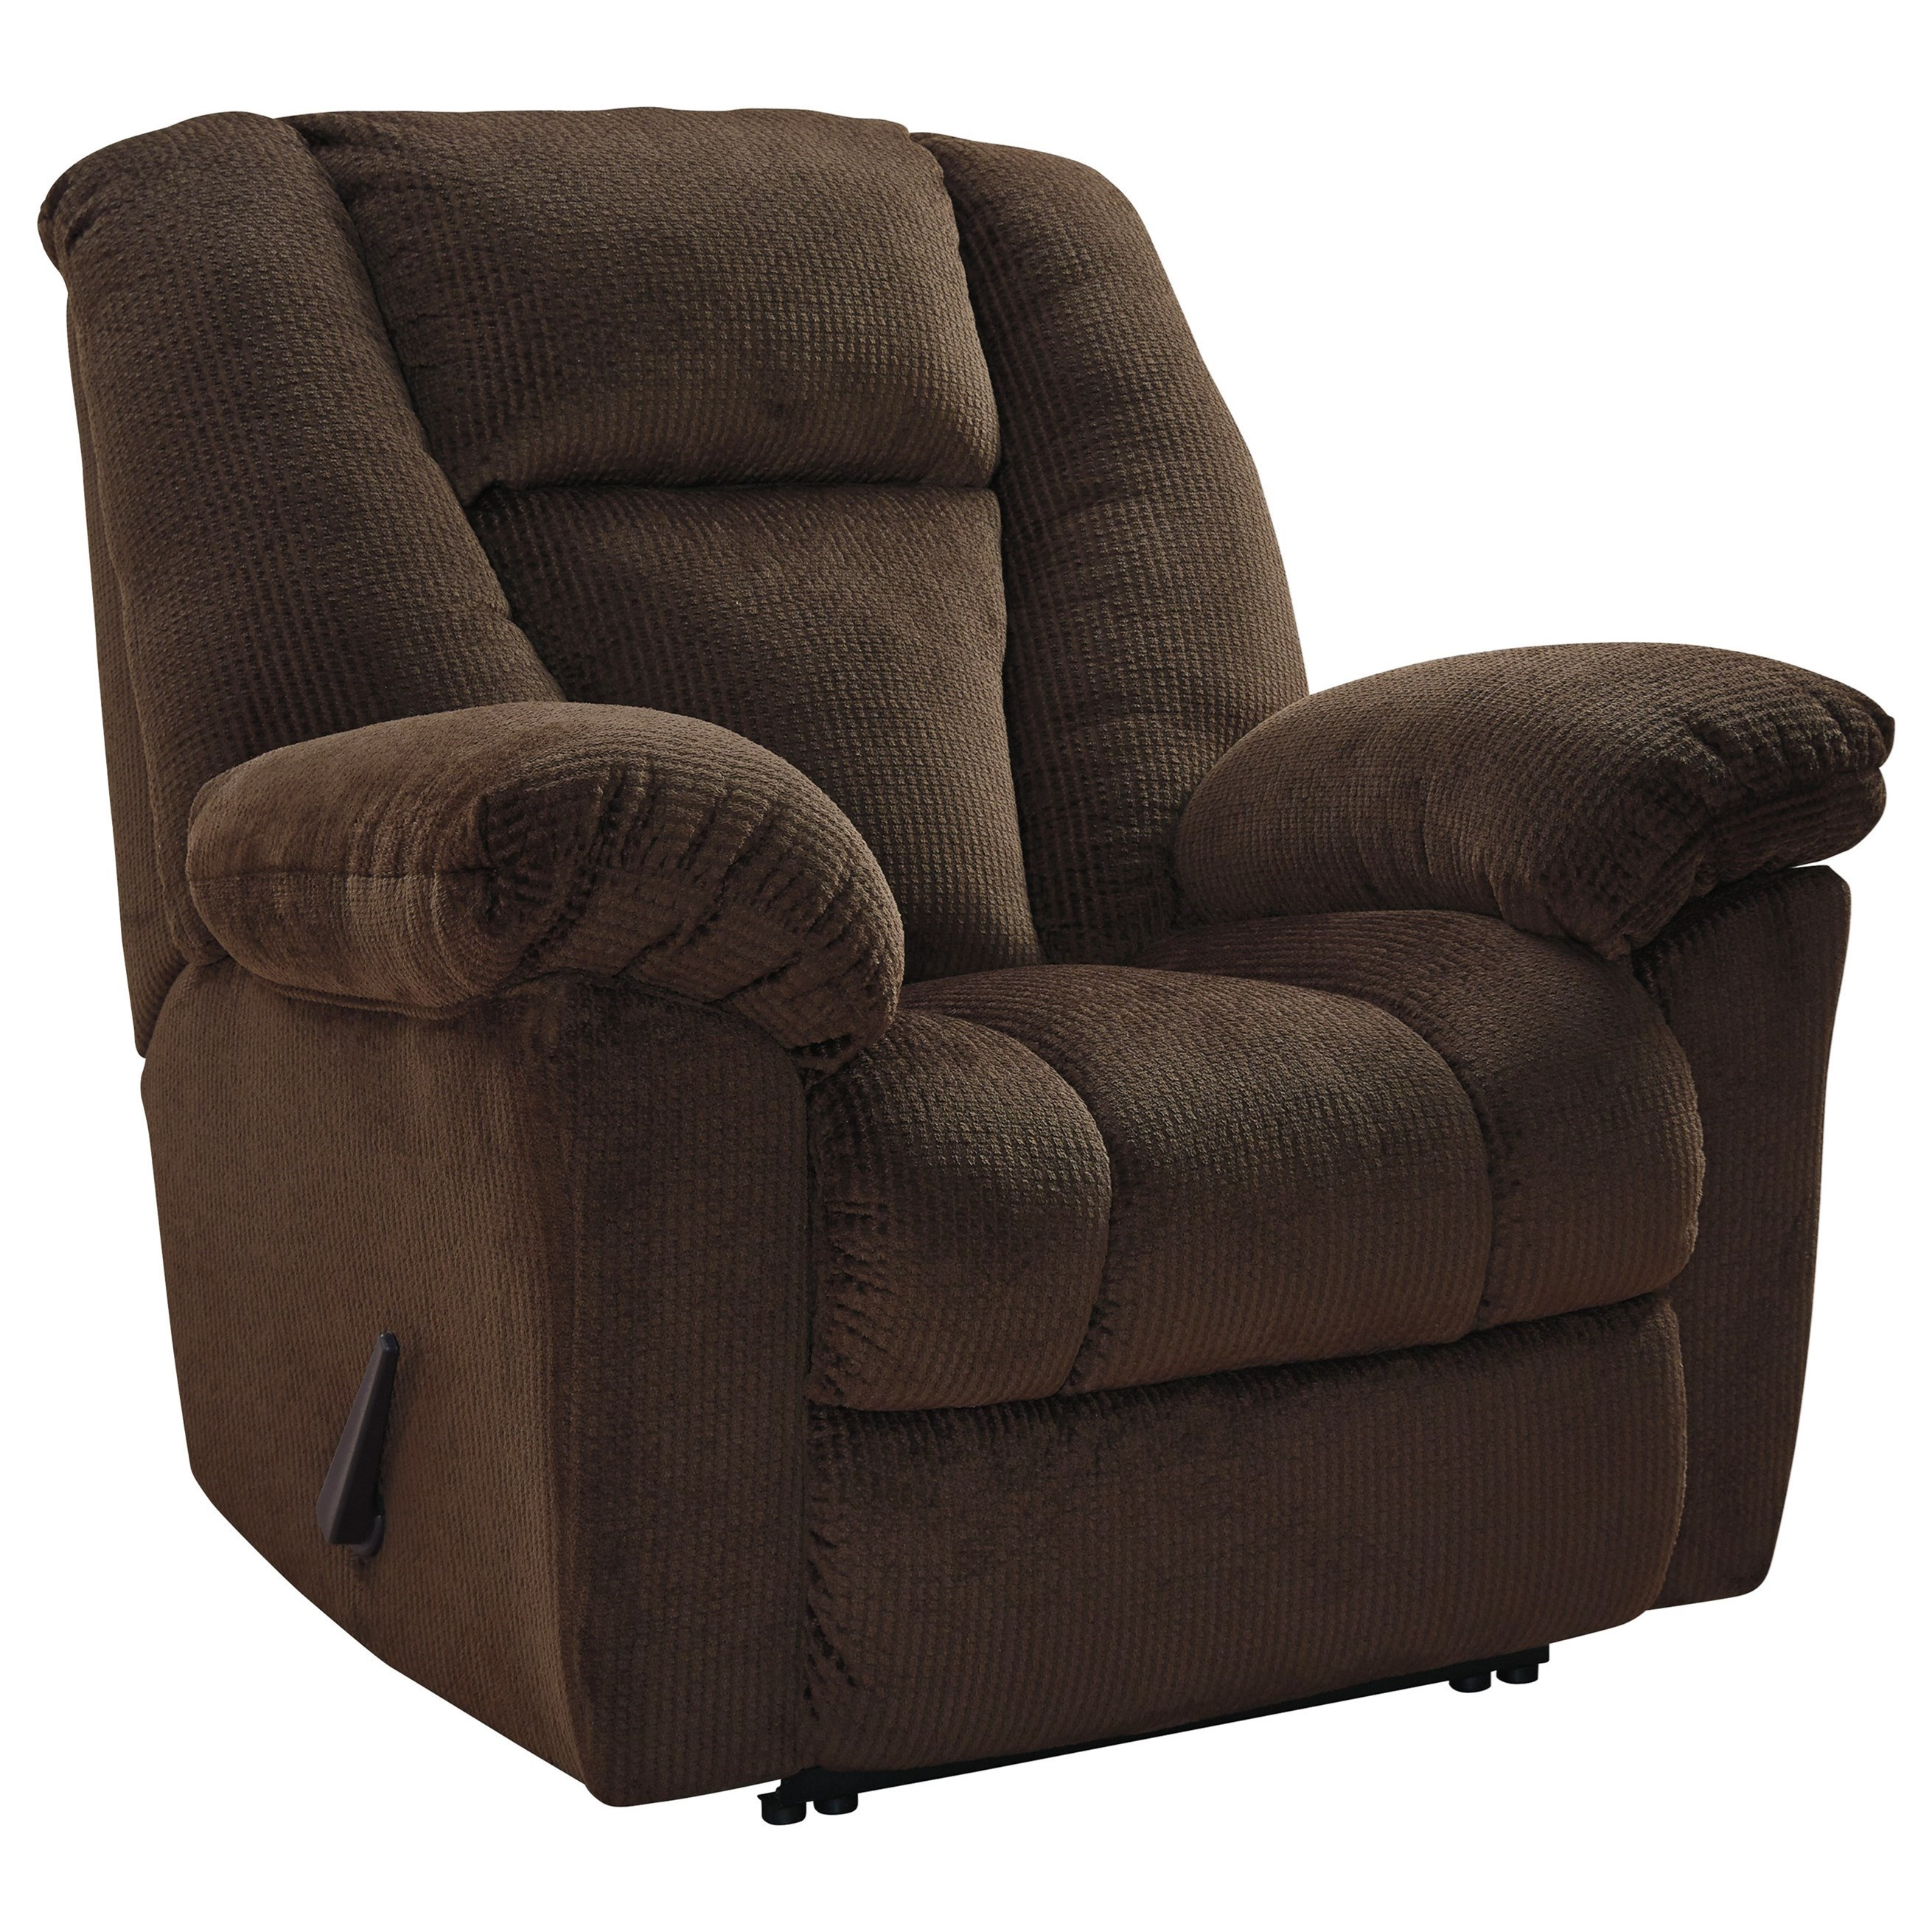 Signature Design by Ashley Nimmons Zero Wall Recliner - Item Number: 3630429